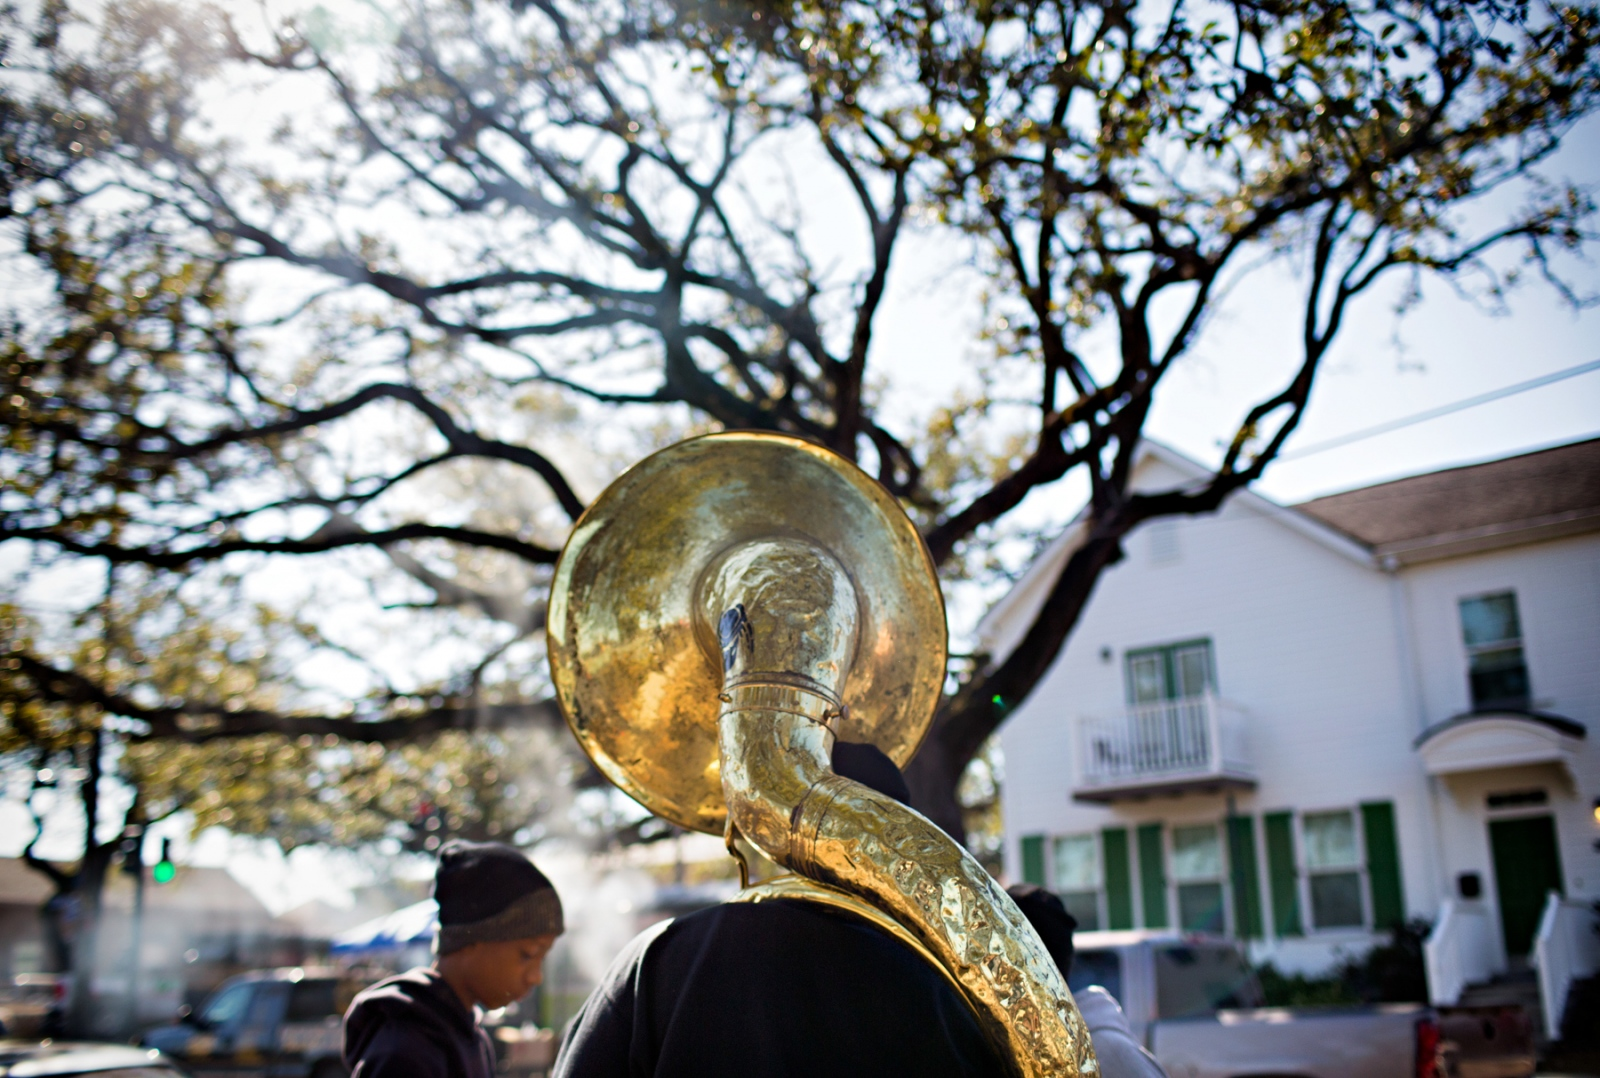 A tuba player member of Hot Eight Brass Band gets ready to start the Second Line parade with the New Generation Social and Pleasure Club.